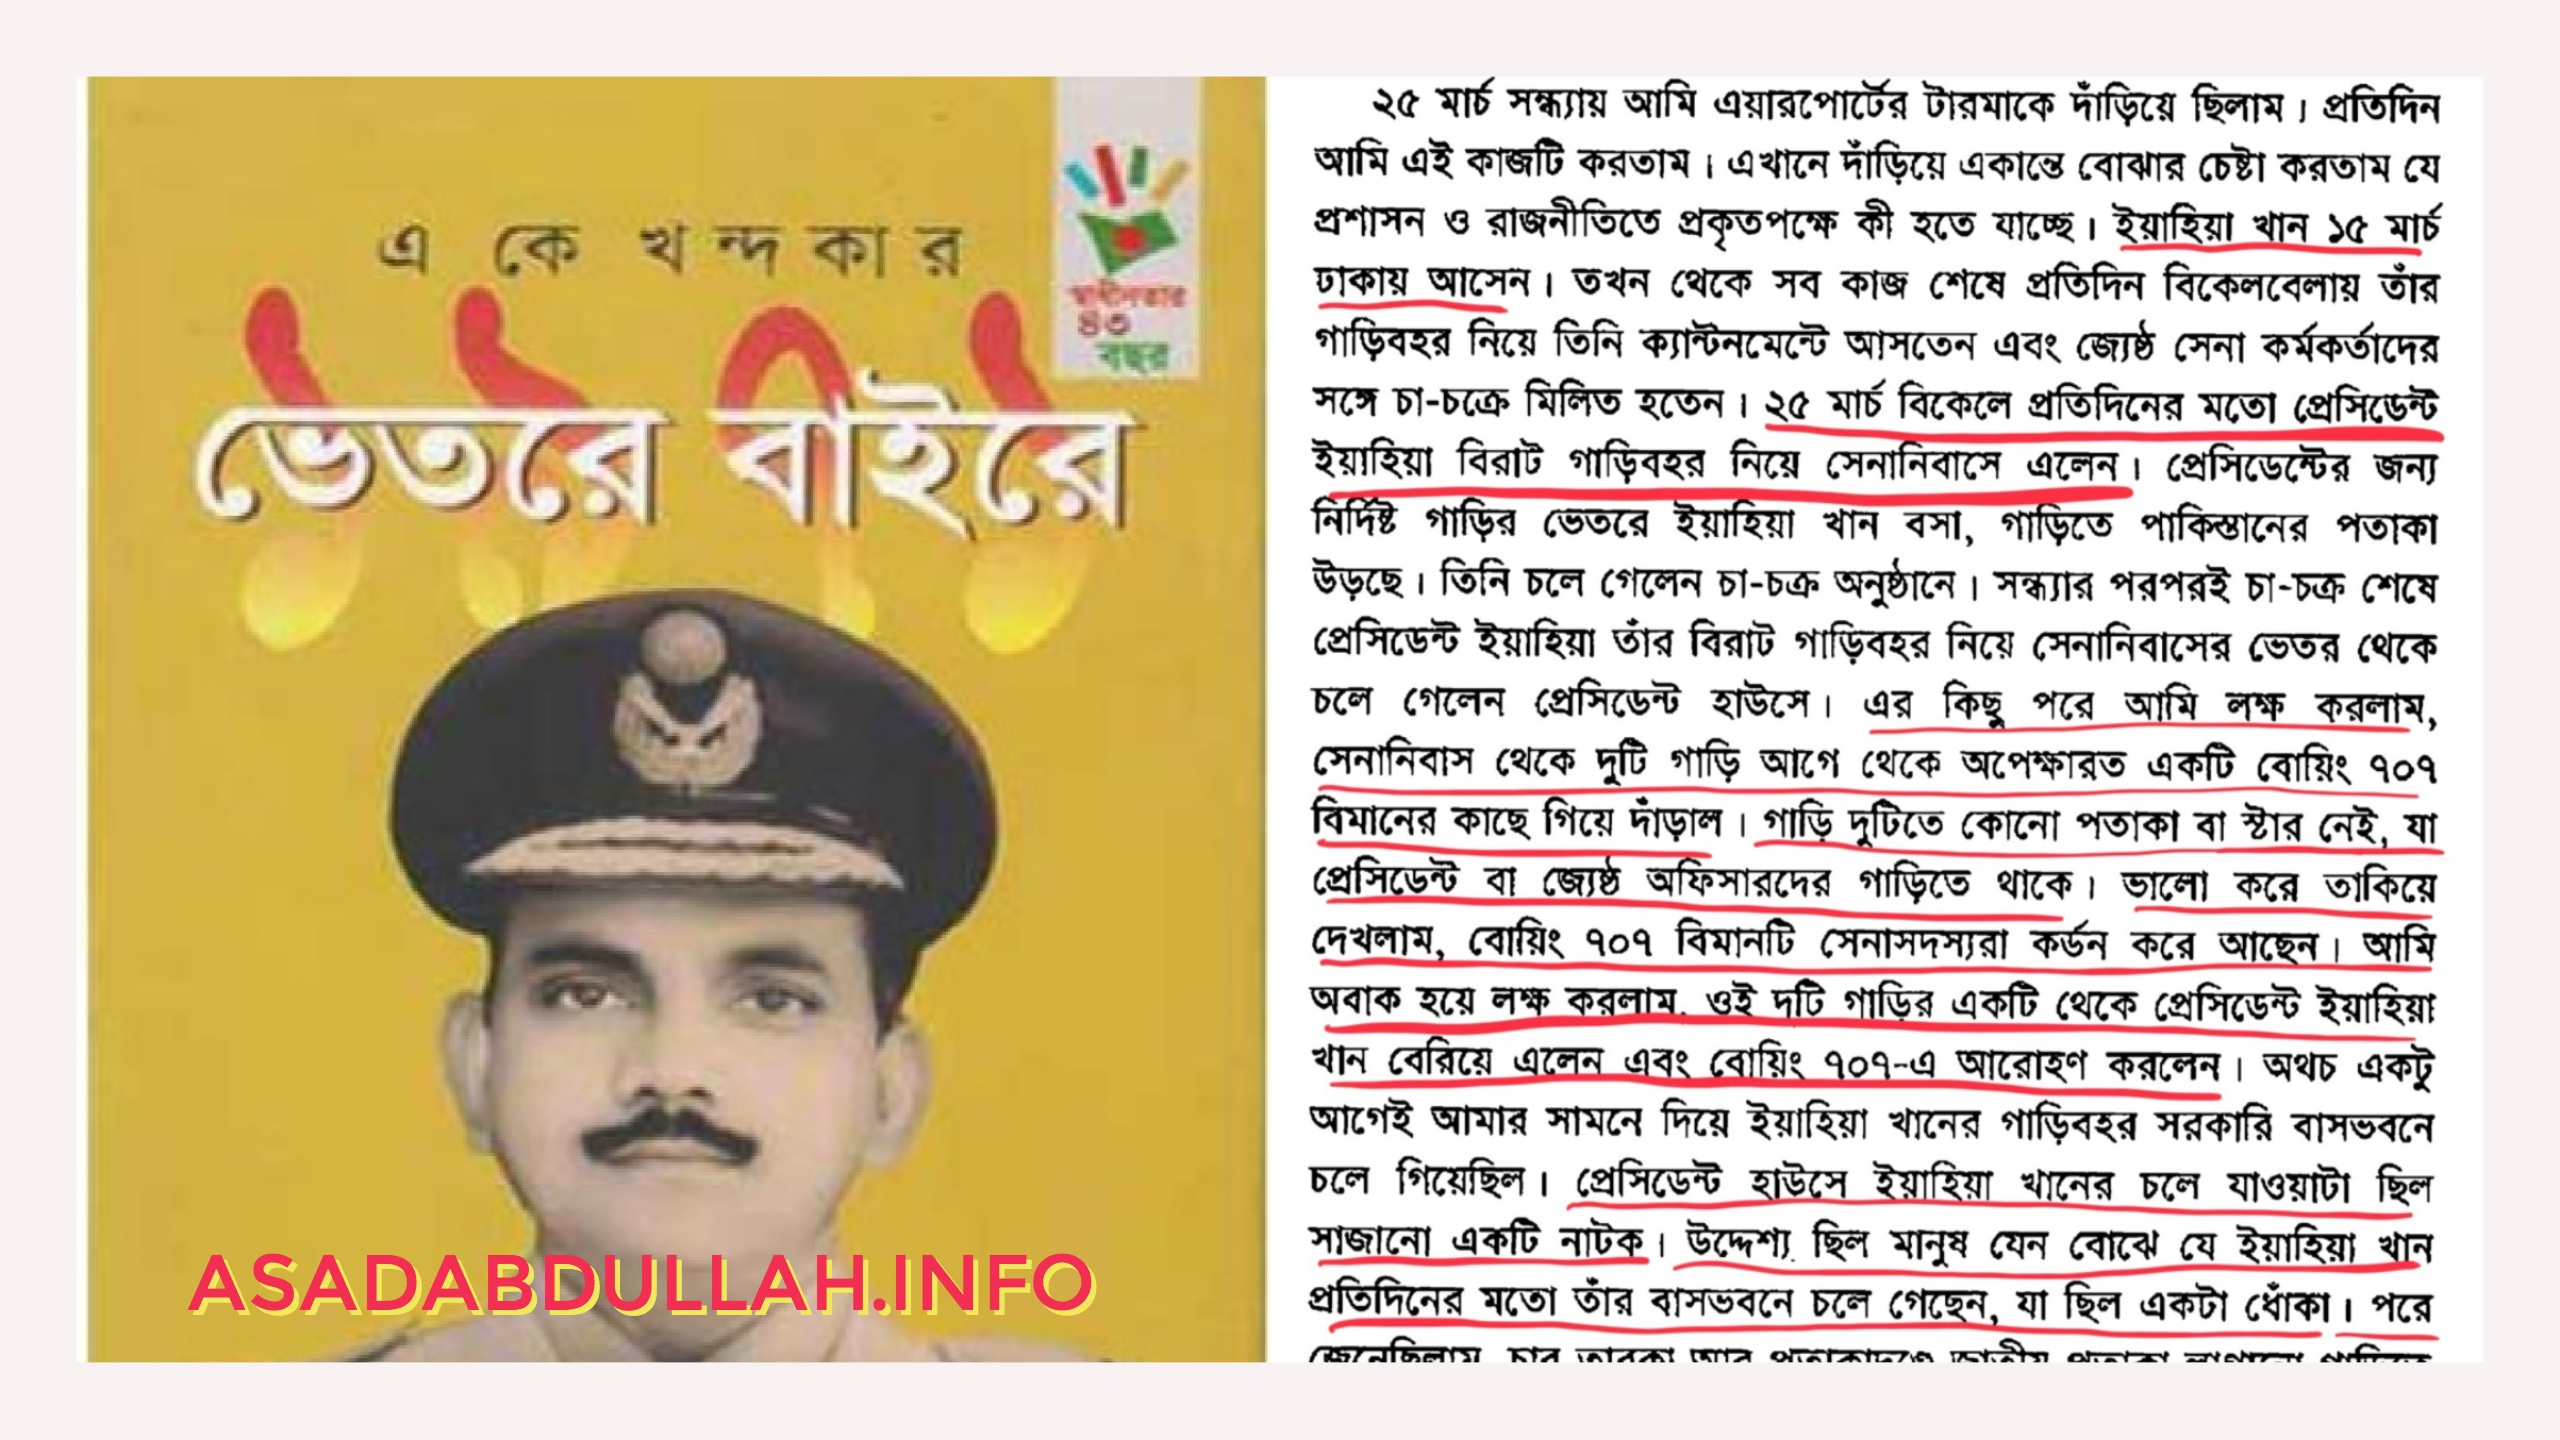 how Yahya khan ran way from Bangladesh